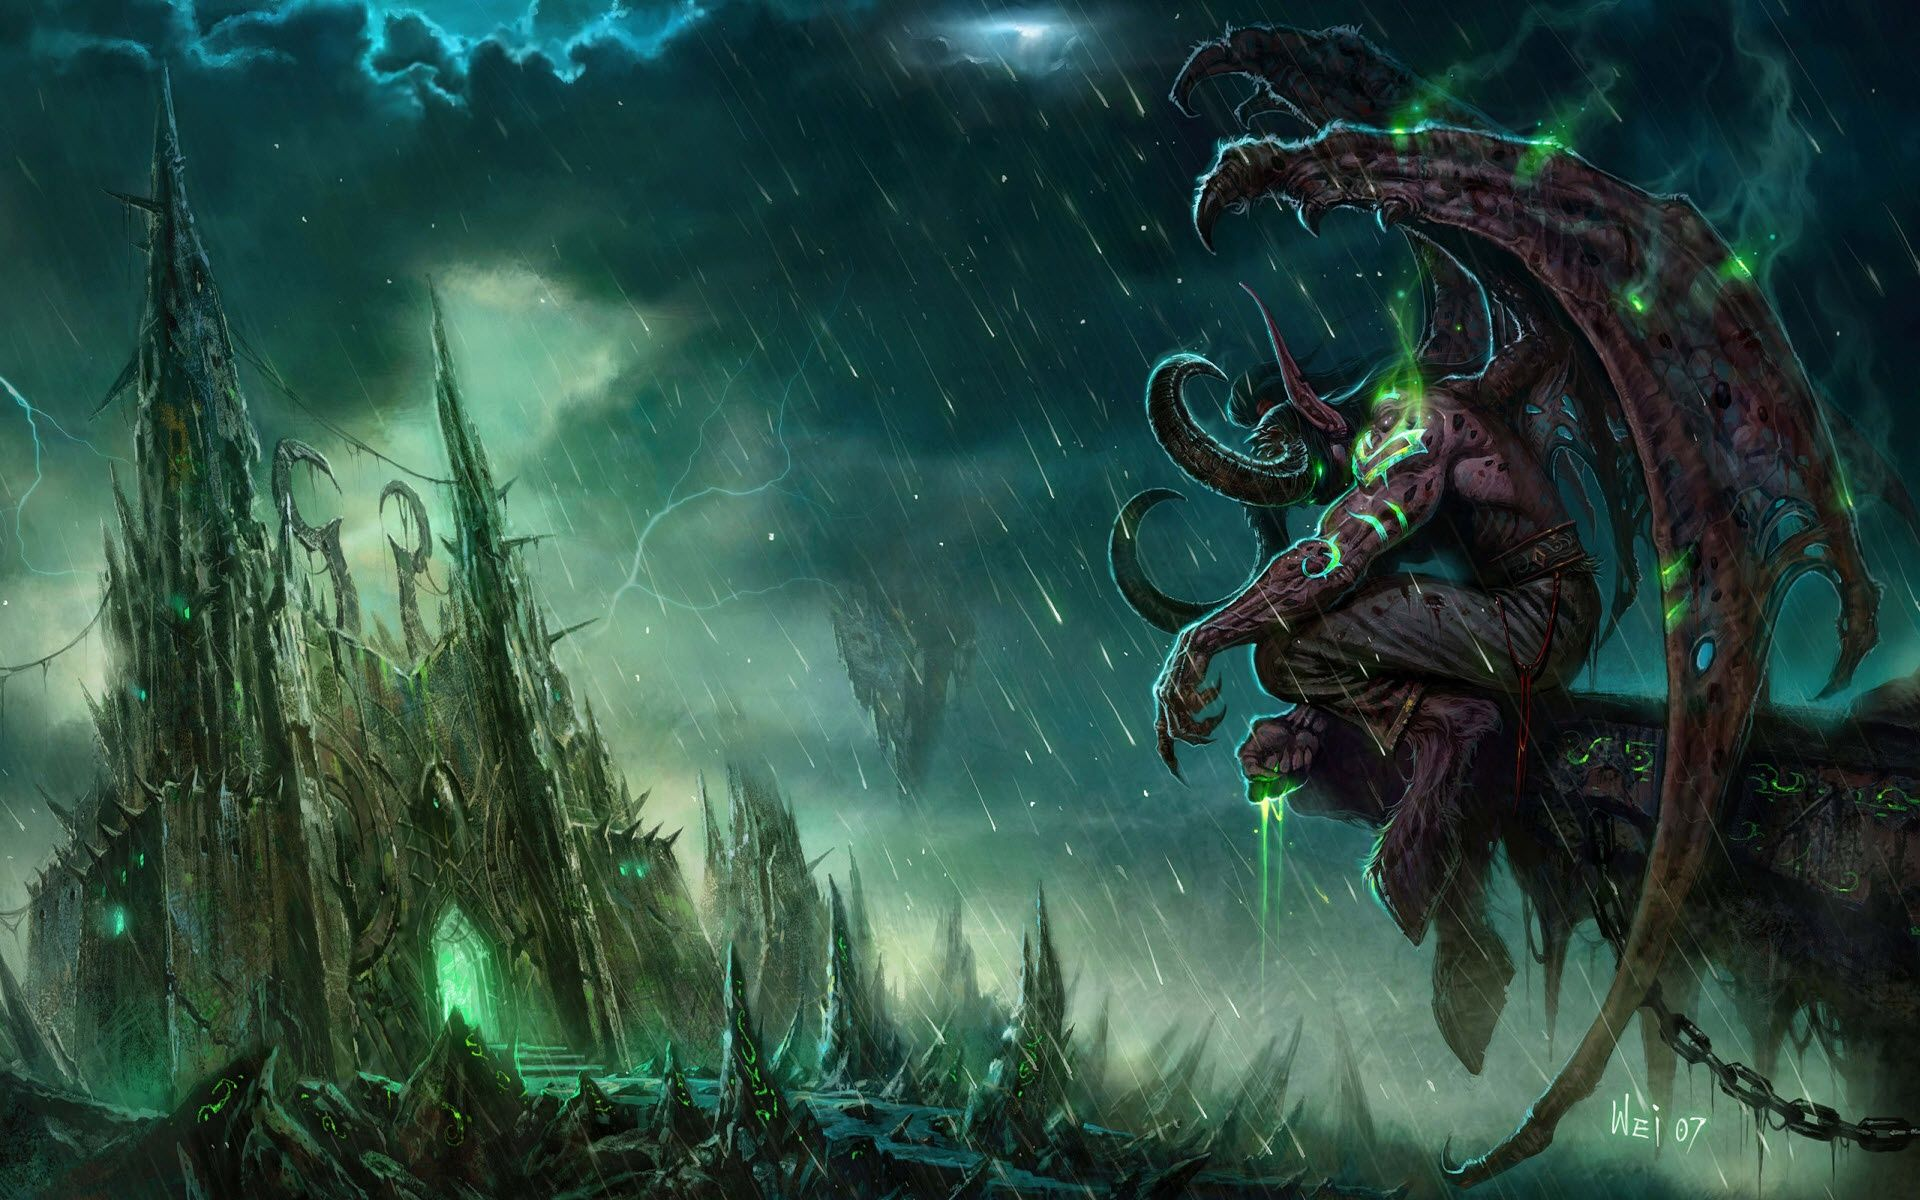 World Of Warcraft Pc Game Hd Desktop Wallpaper In 2019